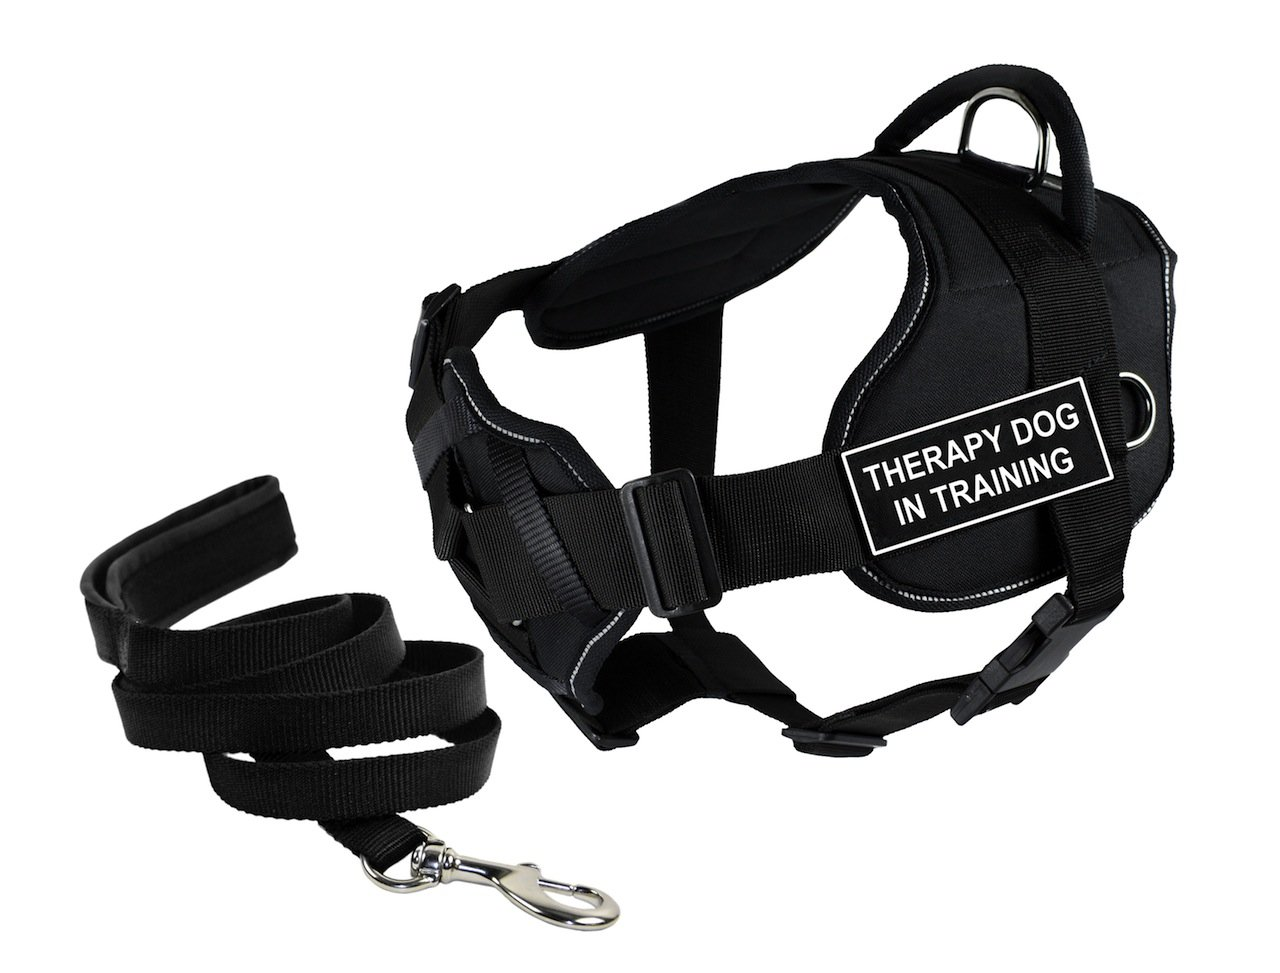 Dean & Tyler's DT Fun Chest Support ''THERAPY DOG IN TRAINING '' Harness with Reflective Trim, X-Large, and 6 ft Padded Puppy Leash.